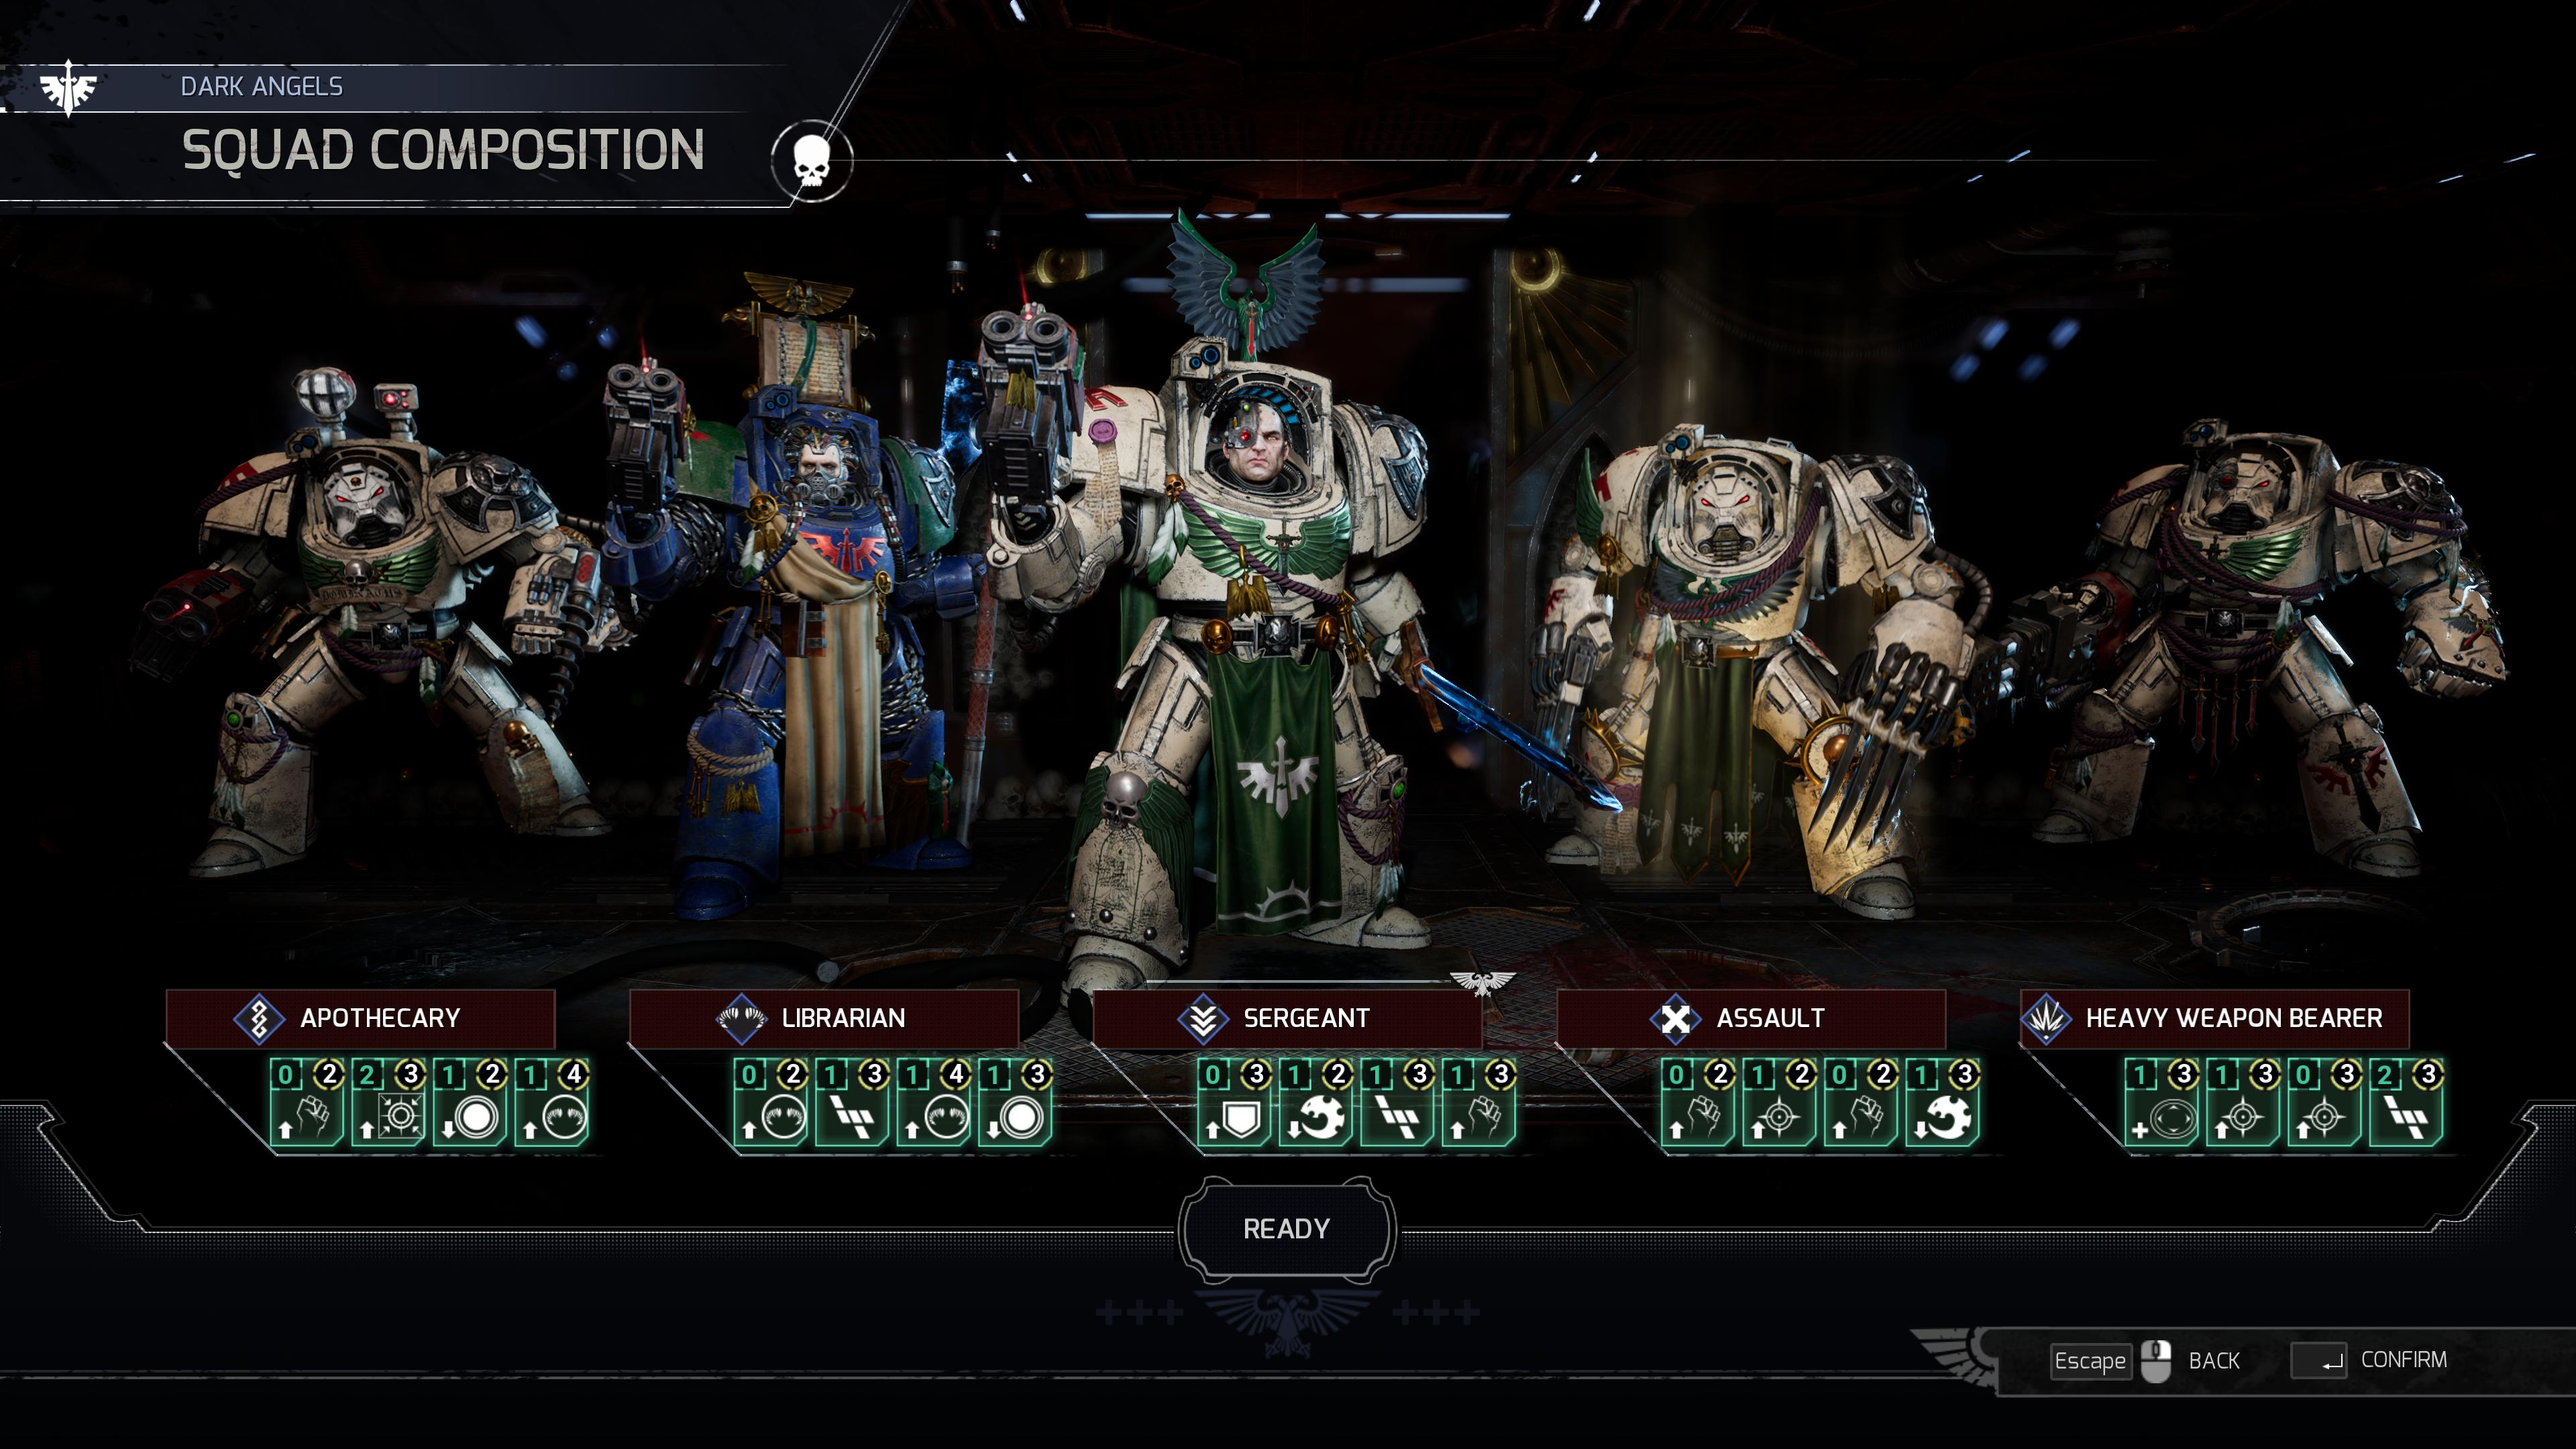 warhammer 40k games are a dime a dozen but space hulk tactics